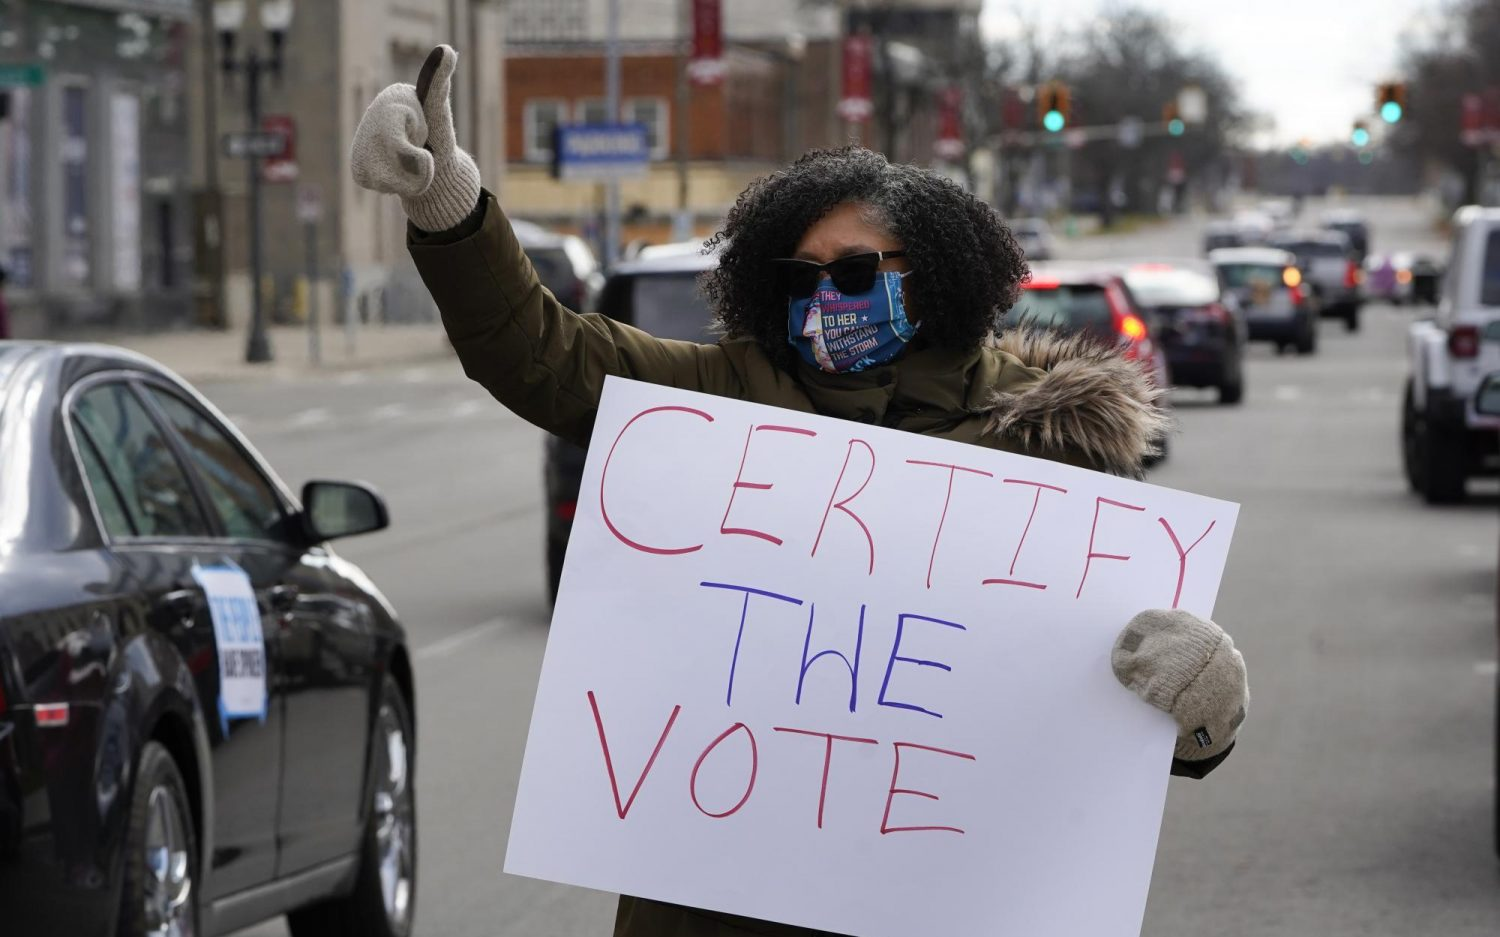 Michigan election certification paves way for Biden transition